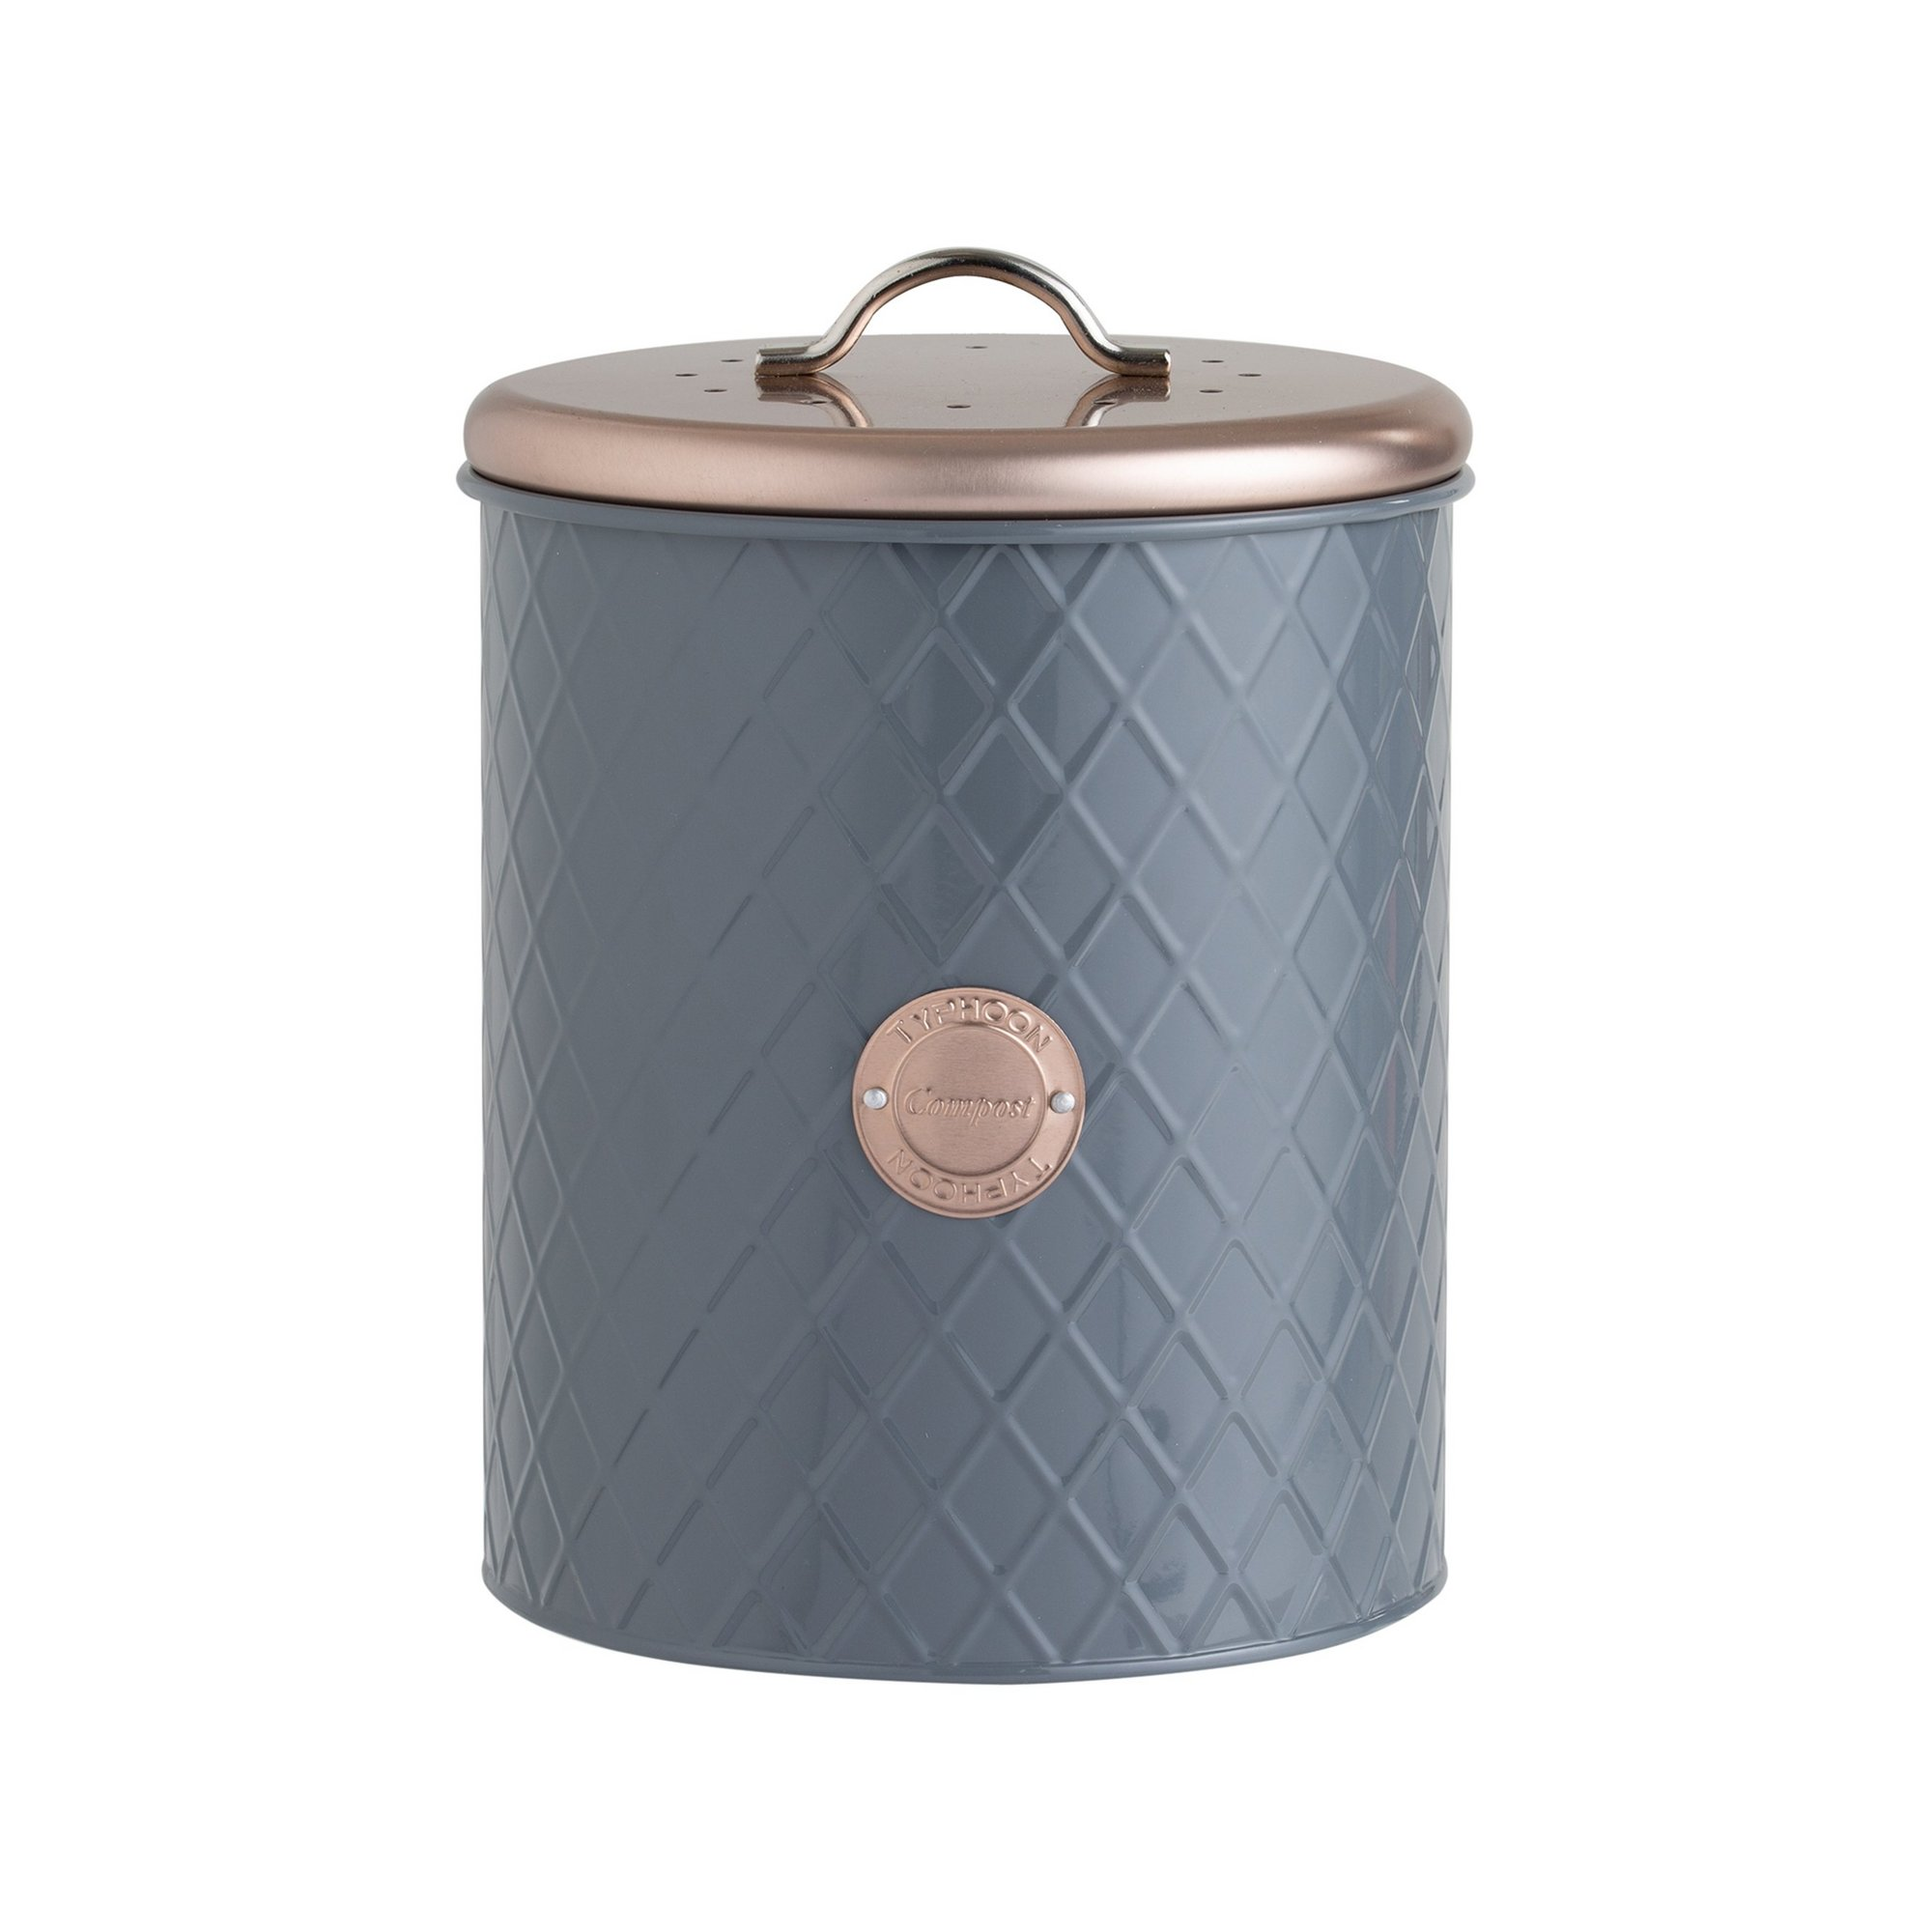 Image of Henrick Compost Caddy